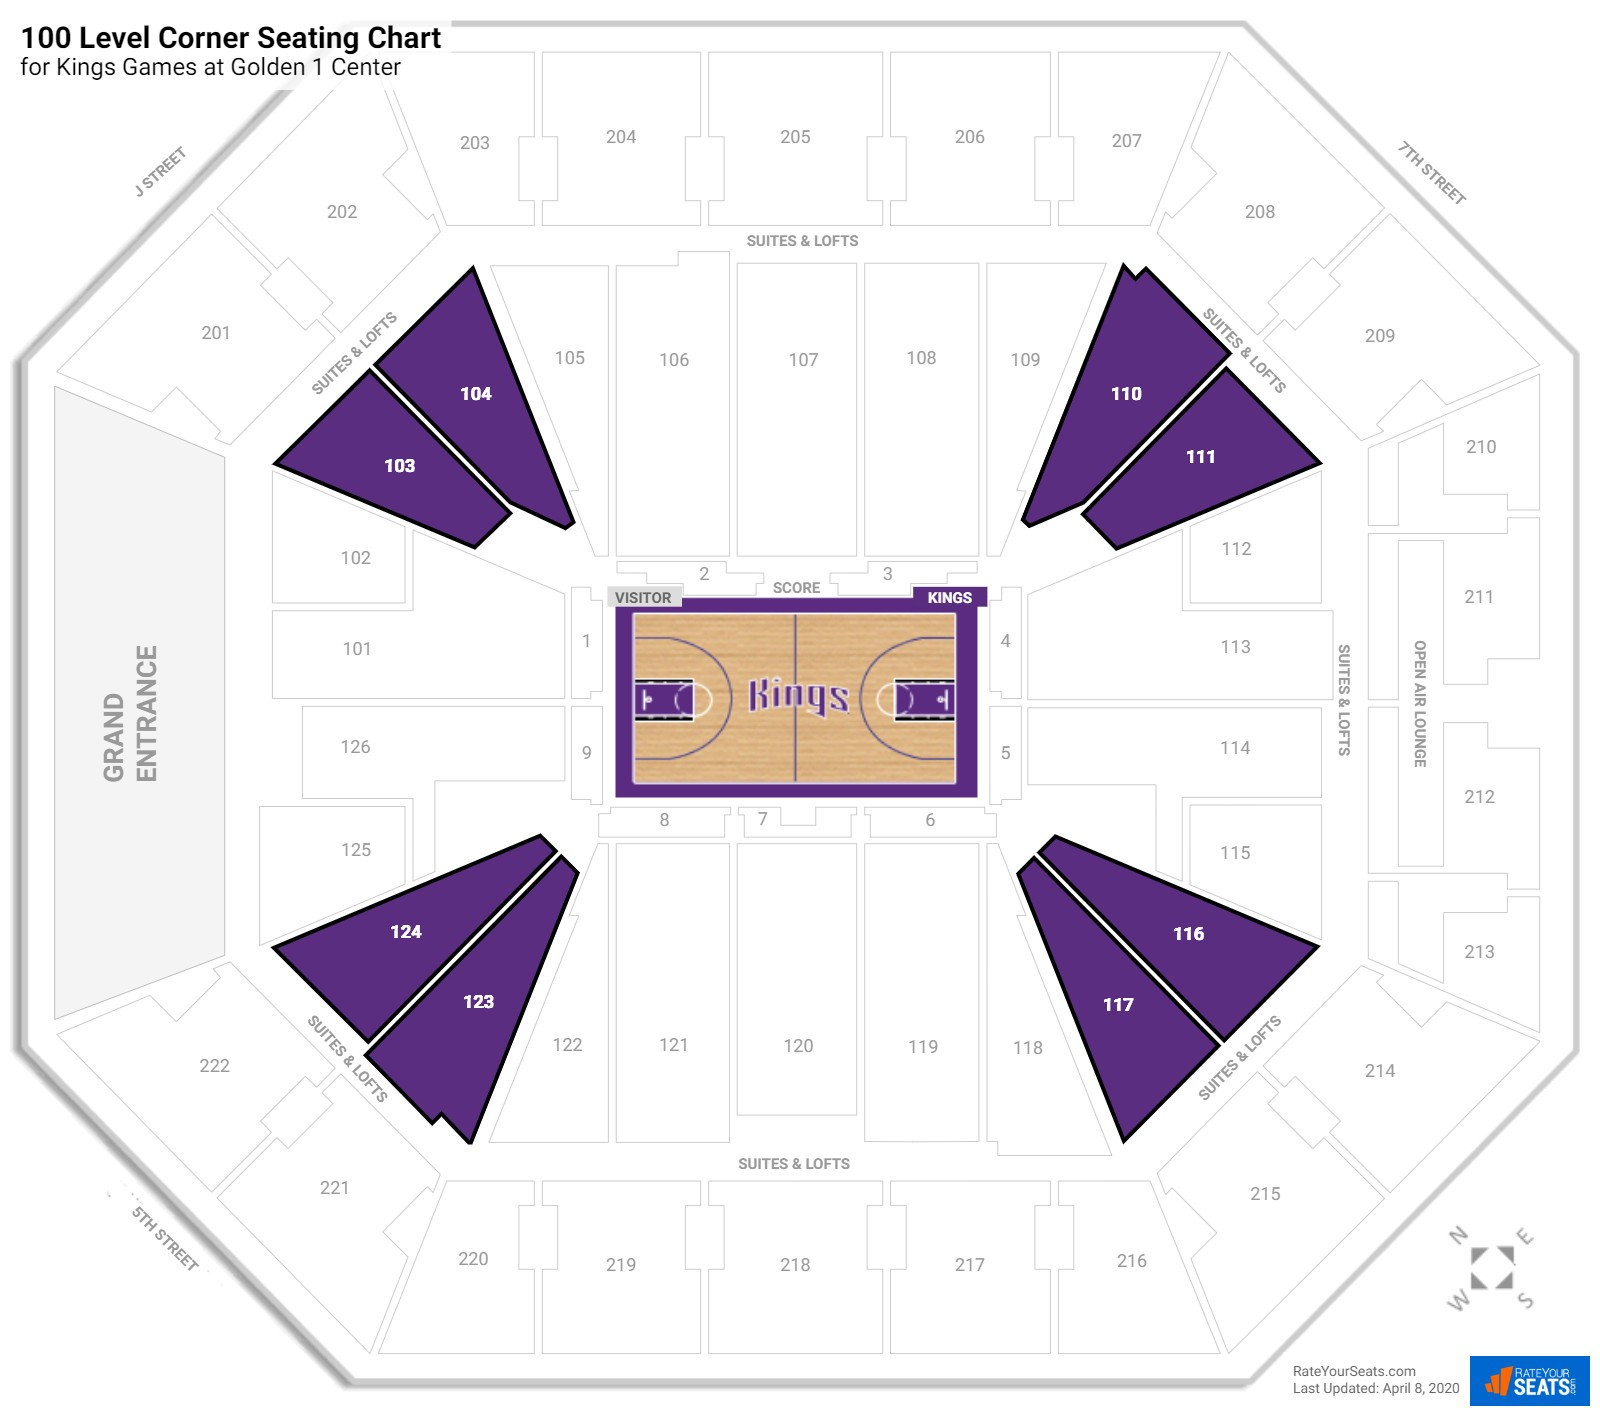 Golden 1 Center 100 Level Corner Seating Chart